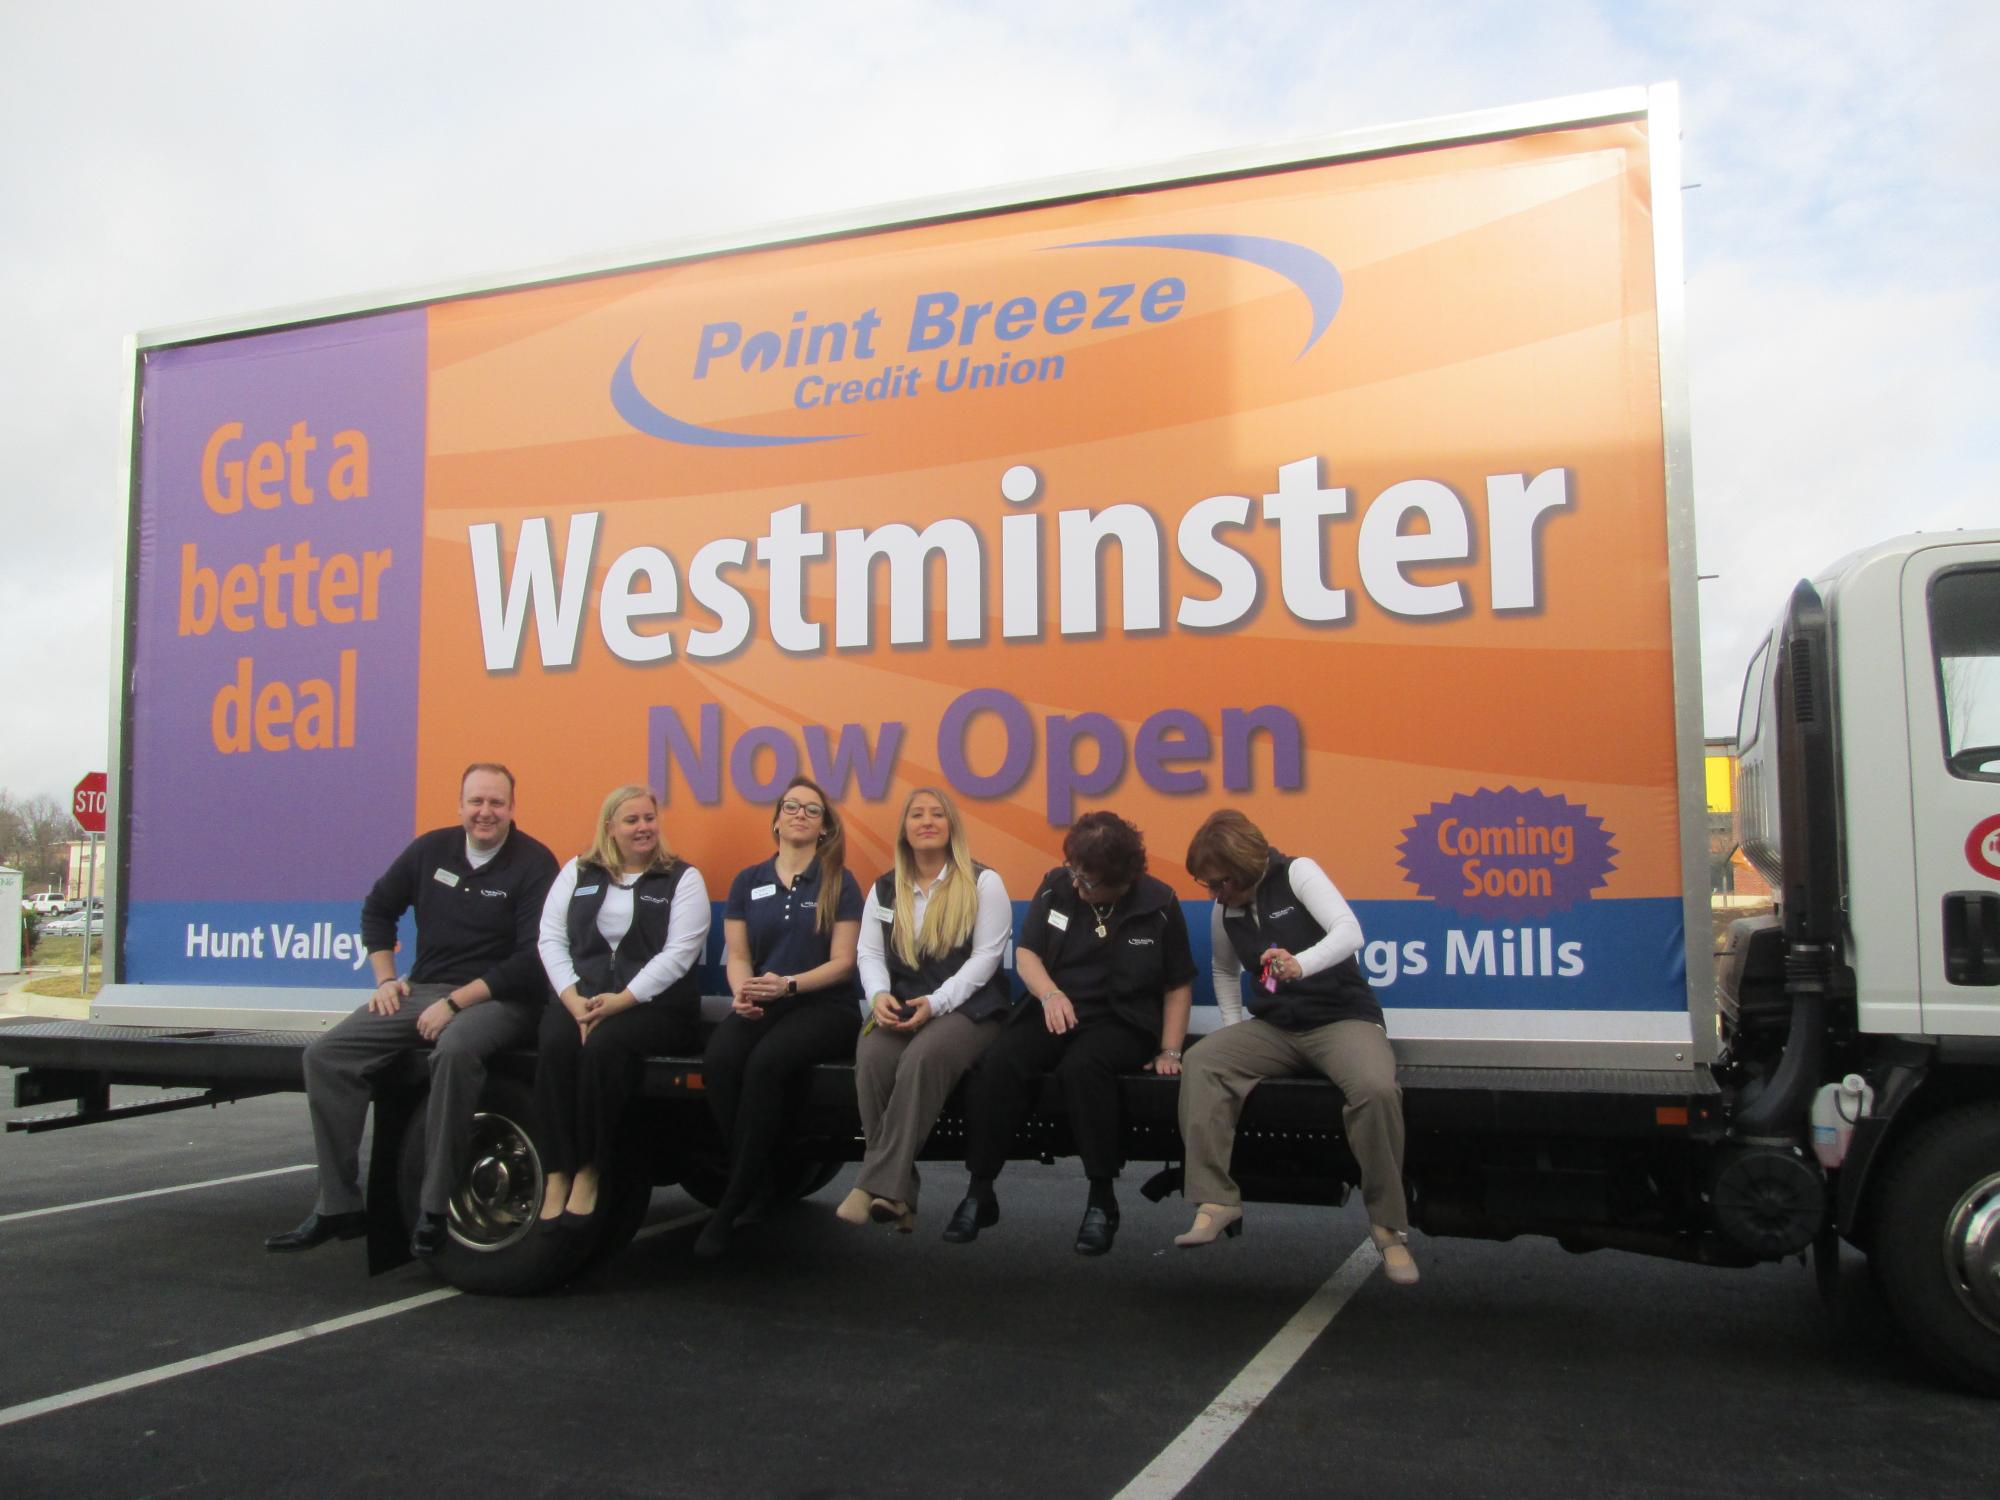 Point Breeze credit Union - Westminster Grand Opening